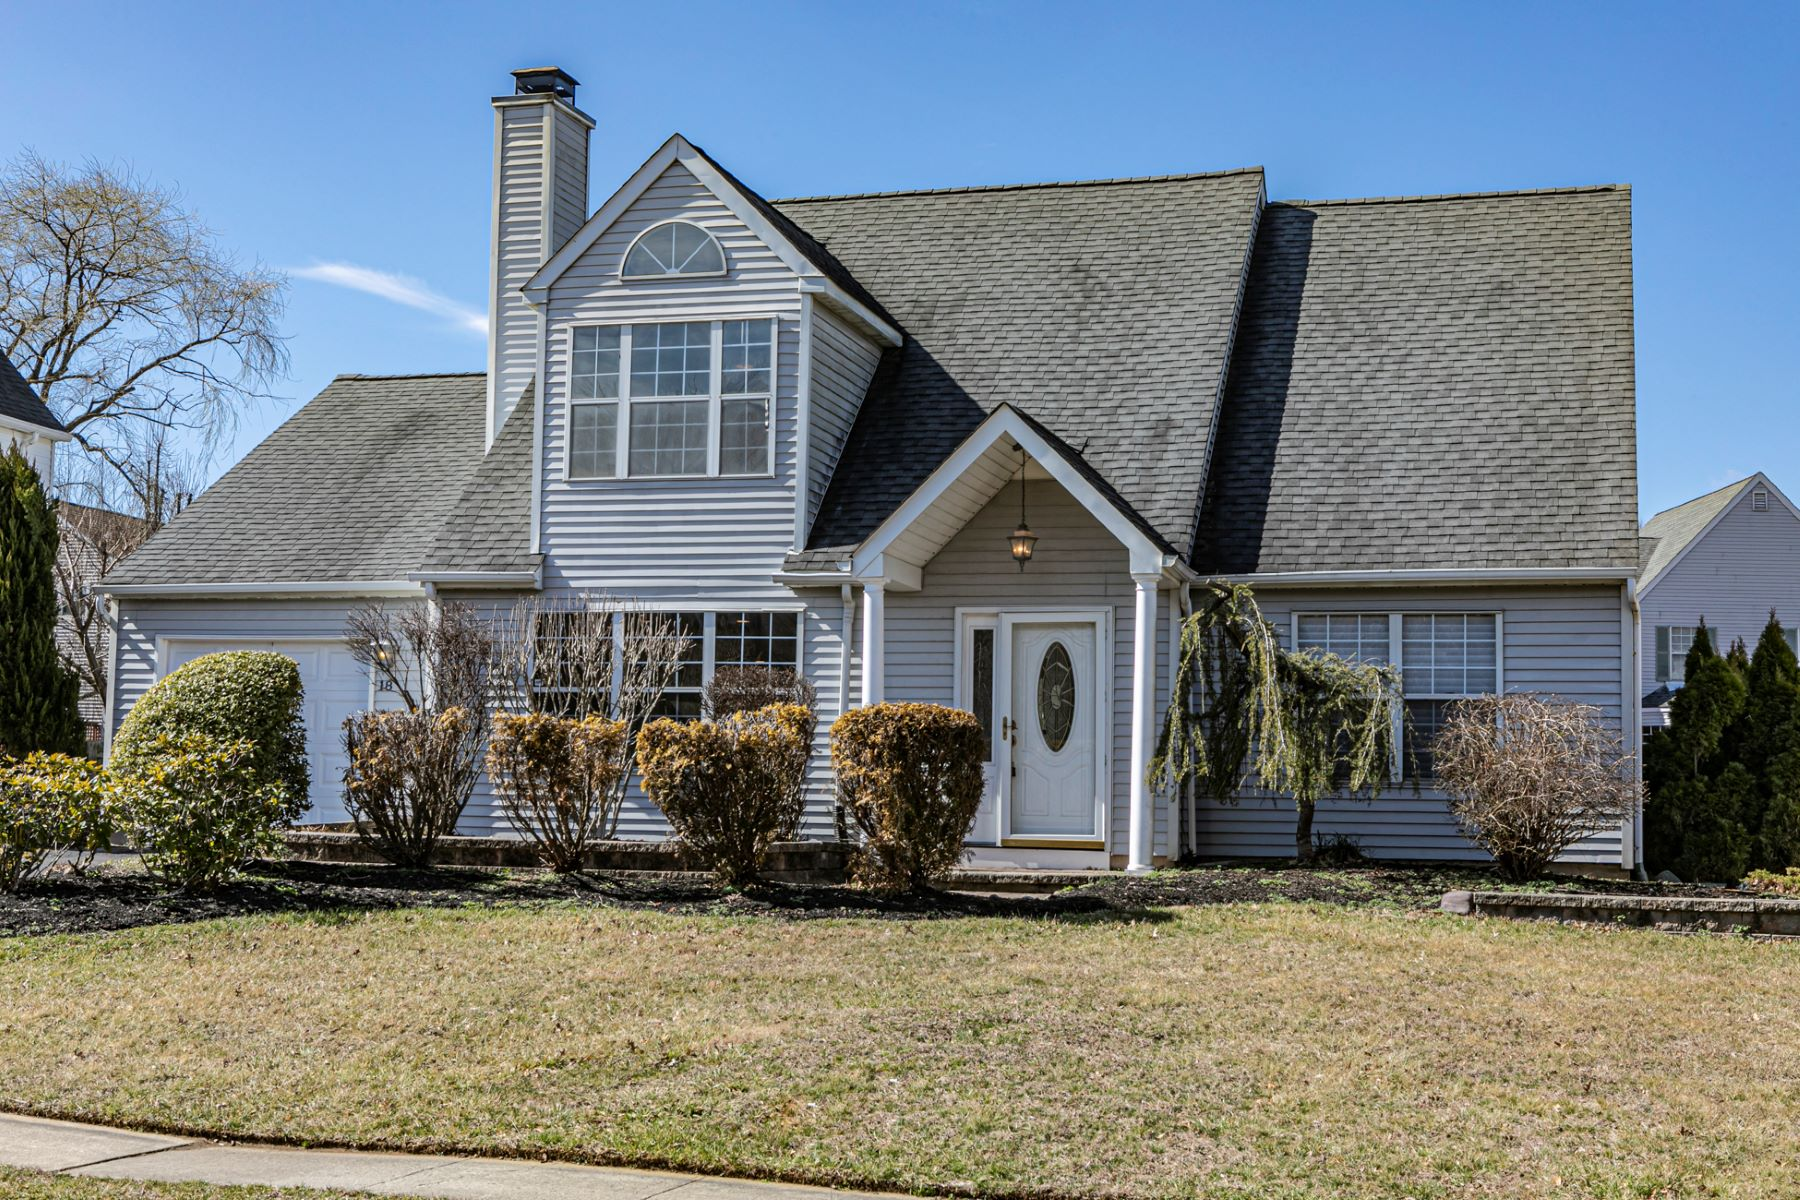 Single Family Homes for Sale at Light and Bright in Hamilton's Ravenscroft 18 Country Lane, Hamilton, New Jersey 08690 United States